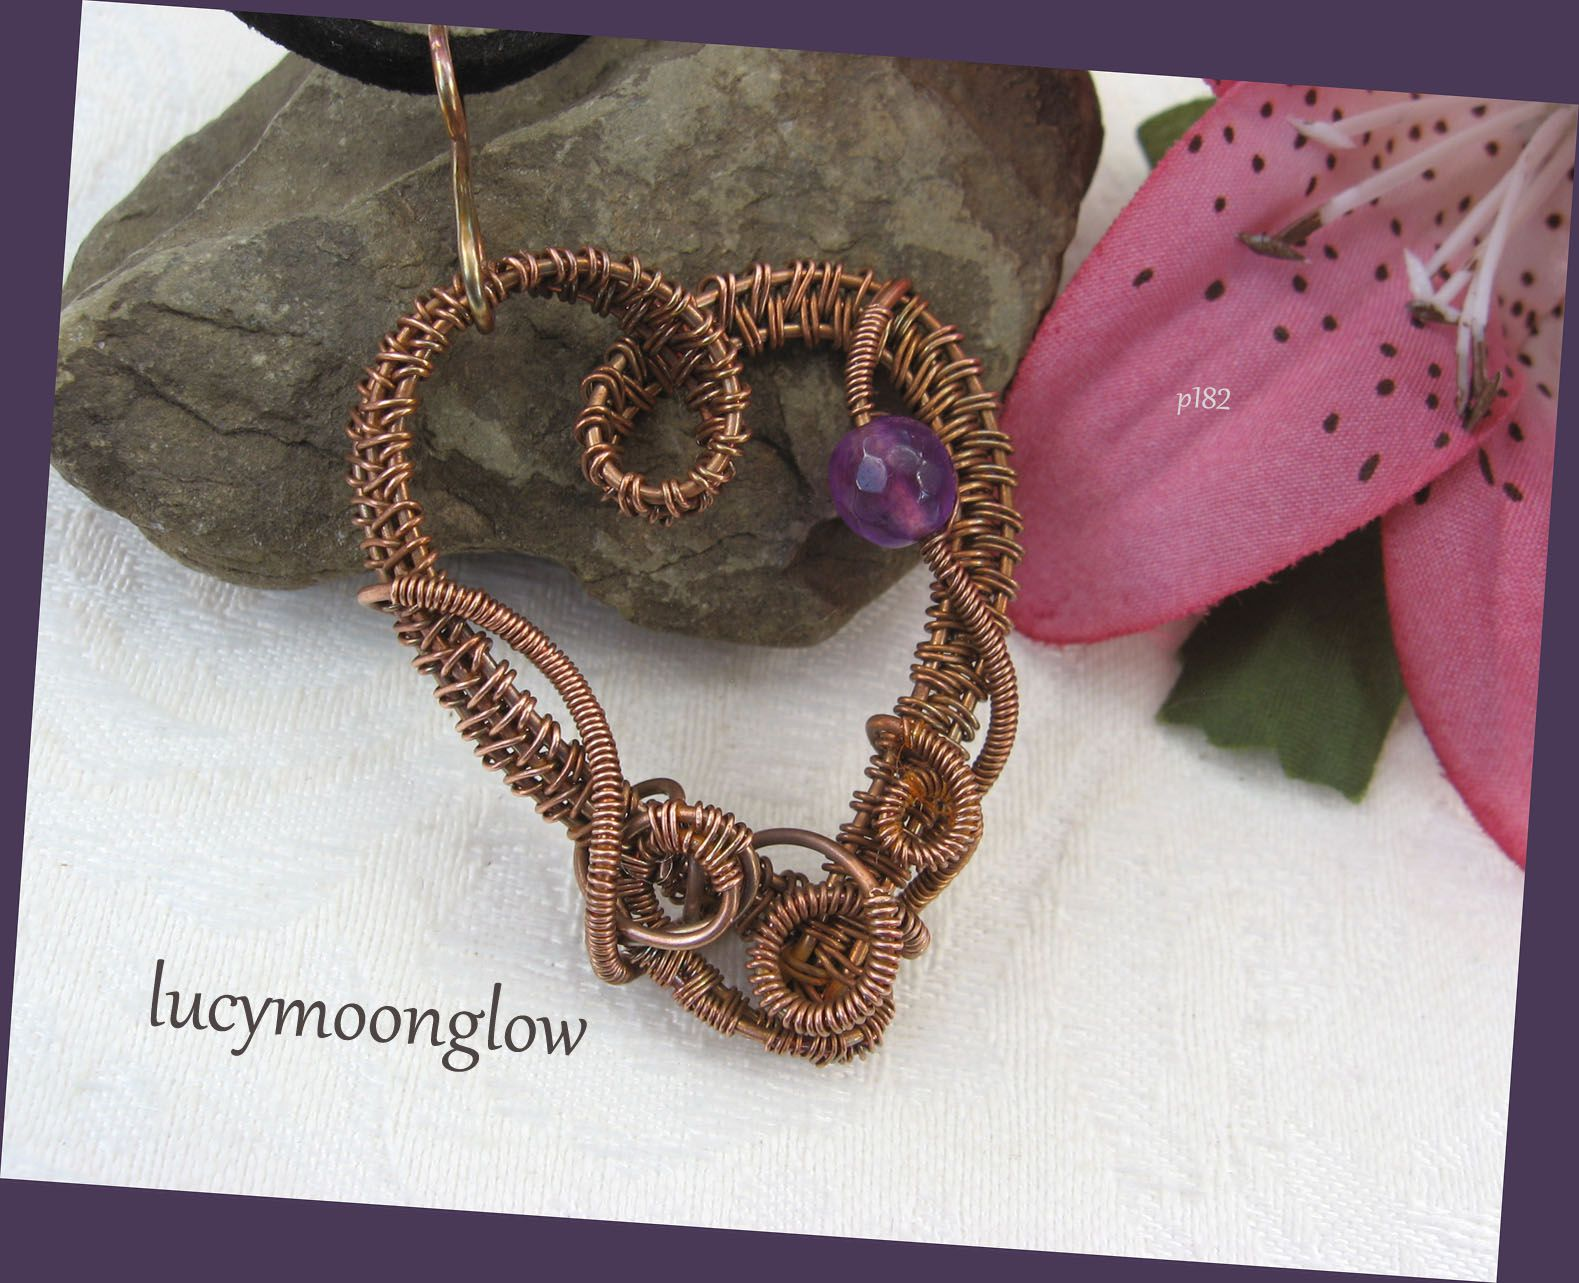 lucymoonglow wireweave wirewoven woven gemstone pendant handmade jade purple copper gift necklace jewelry wire heart handcrafted